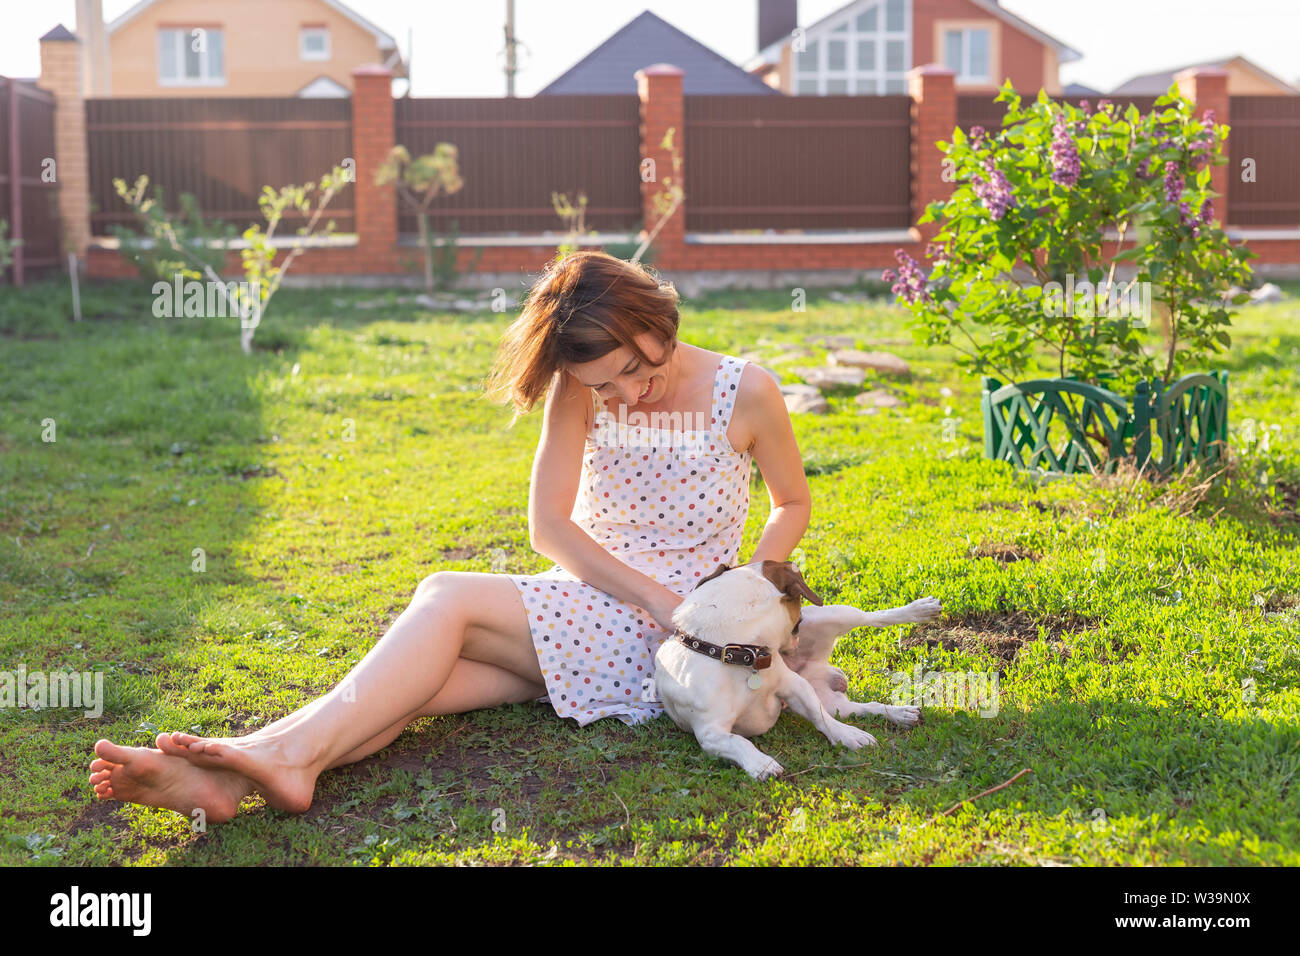 Laughing positive young woman in dress plays with her beloved restless dog sitting in the yard of a country house on a sunny summer day. Family - Stock Image